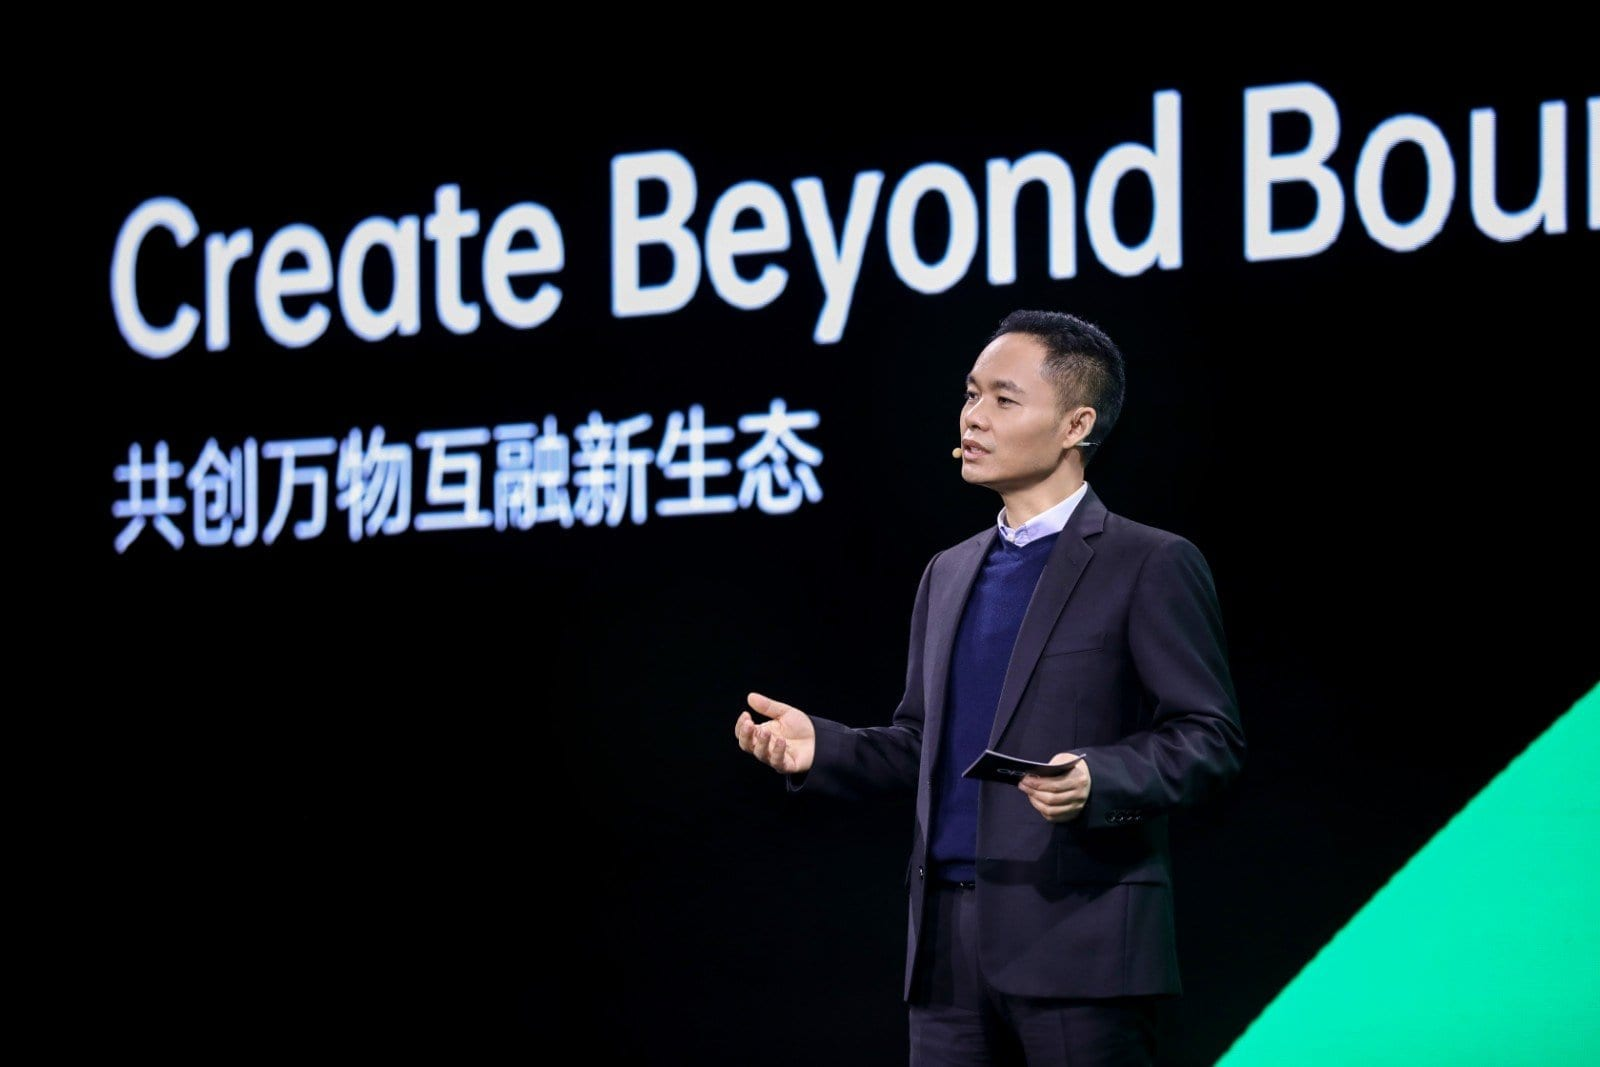 Tony Chen, Founder and CEO of Oppo